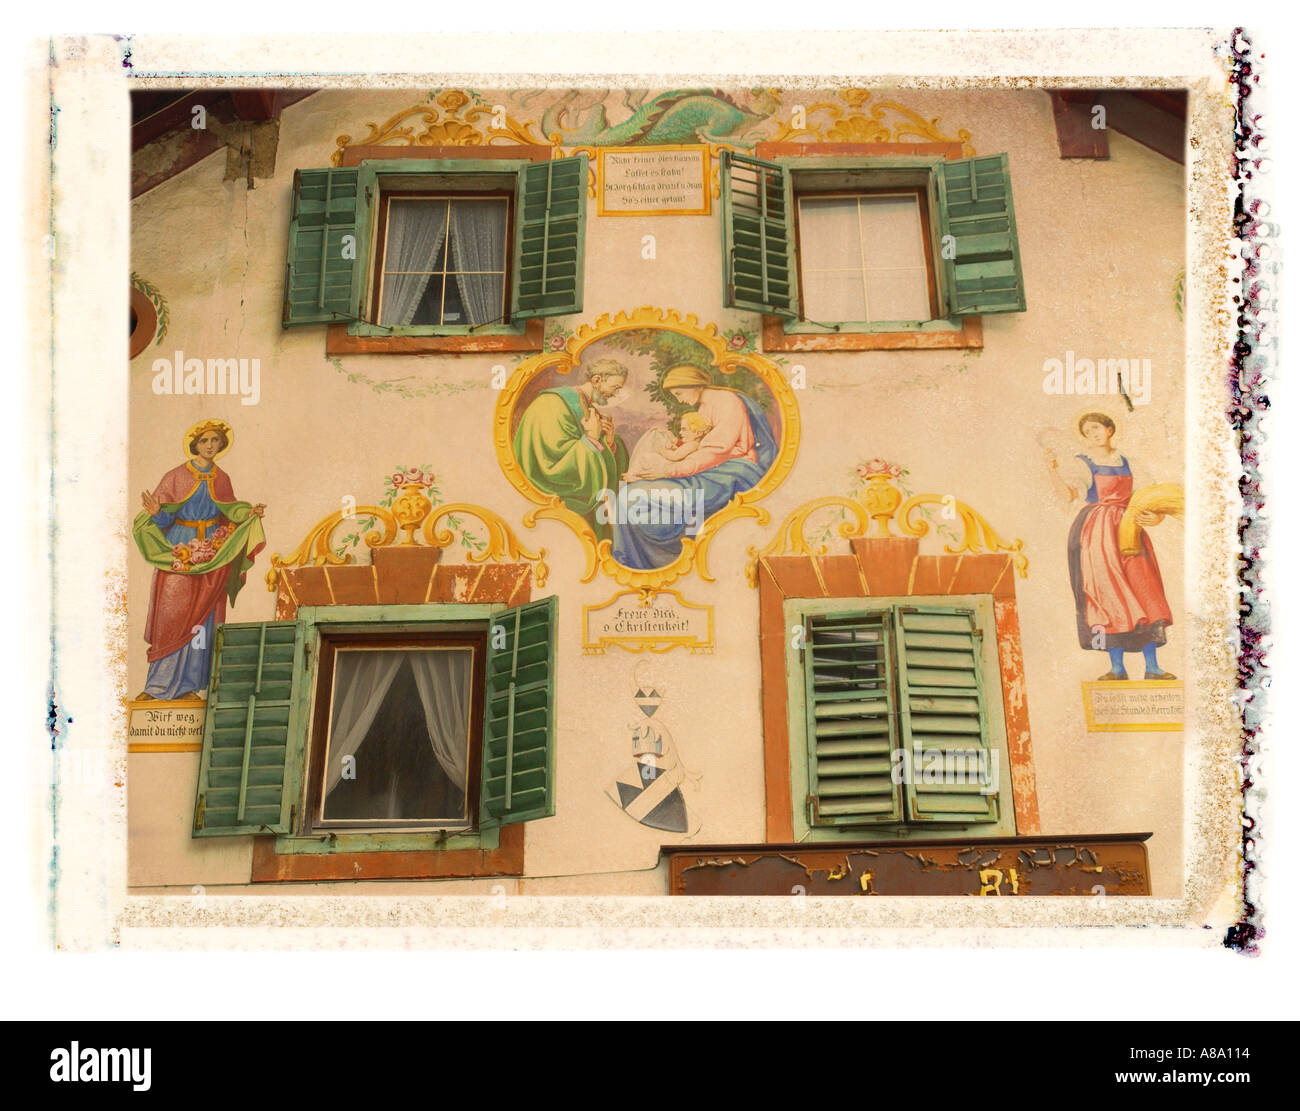 Murals on building Austria - Stock Image